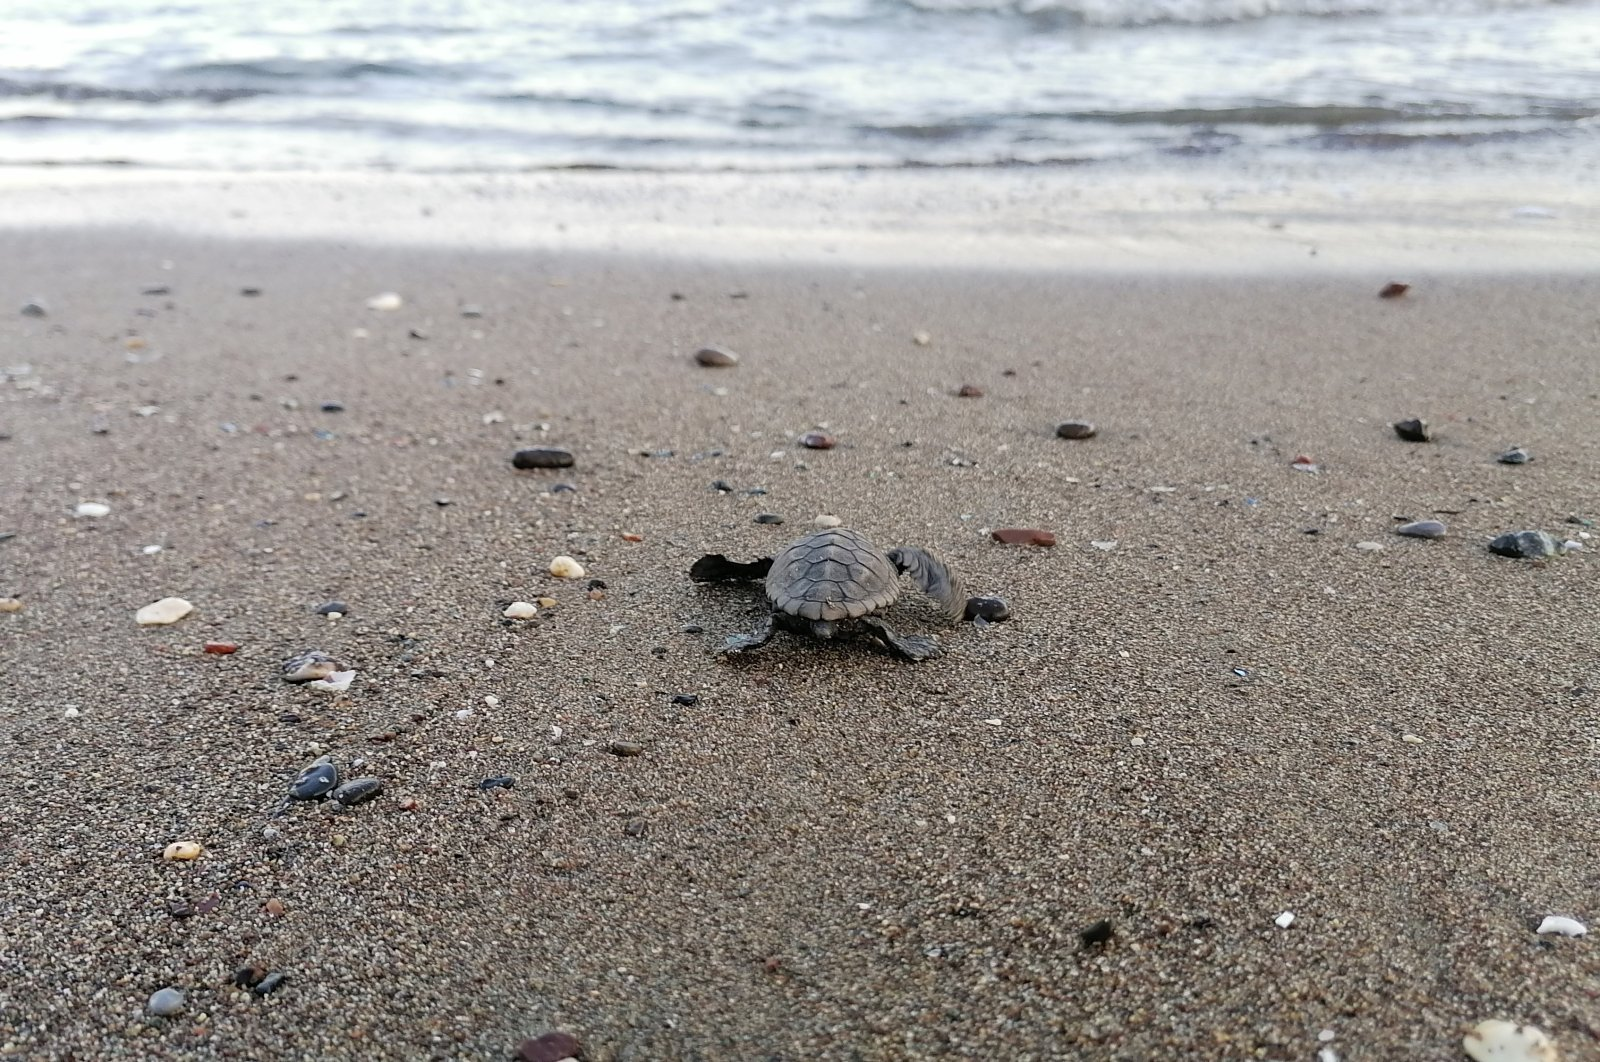 A baby turtle heads to sea on a beach in Mersin, southern Turkey, Aug. 7, 2020. (DHA Photo)